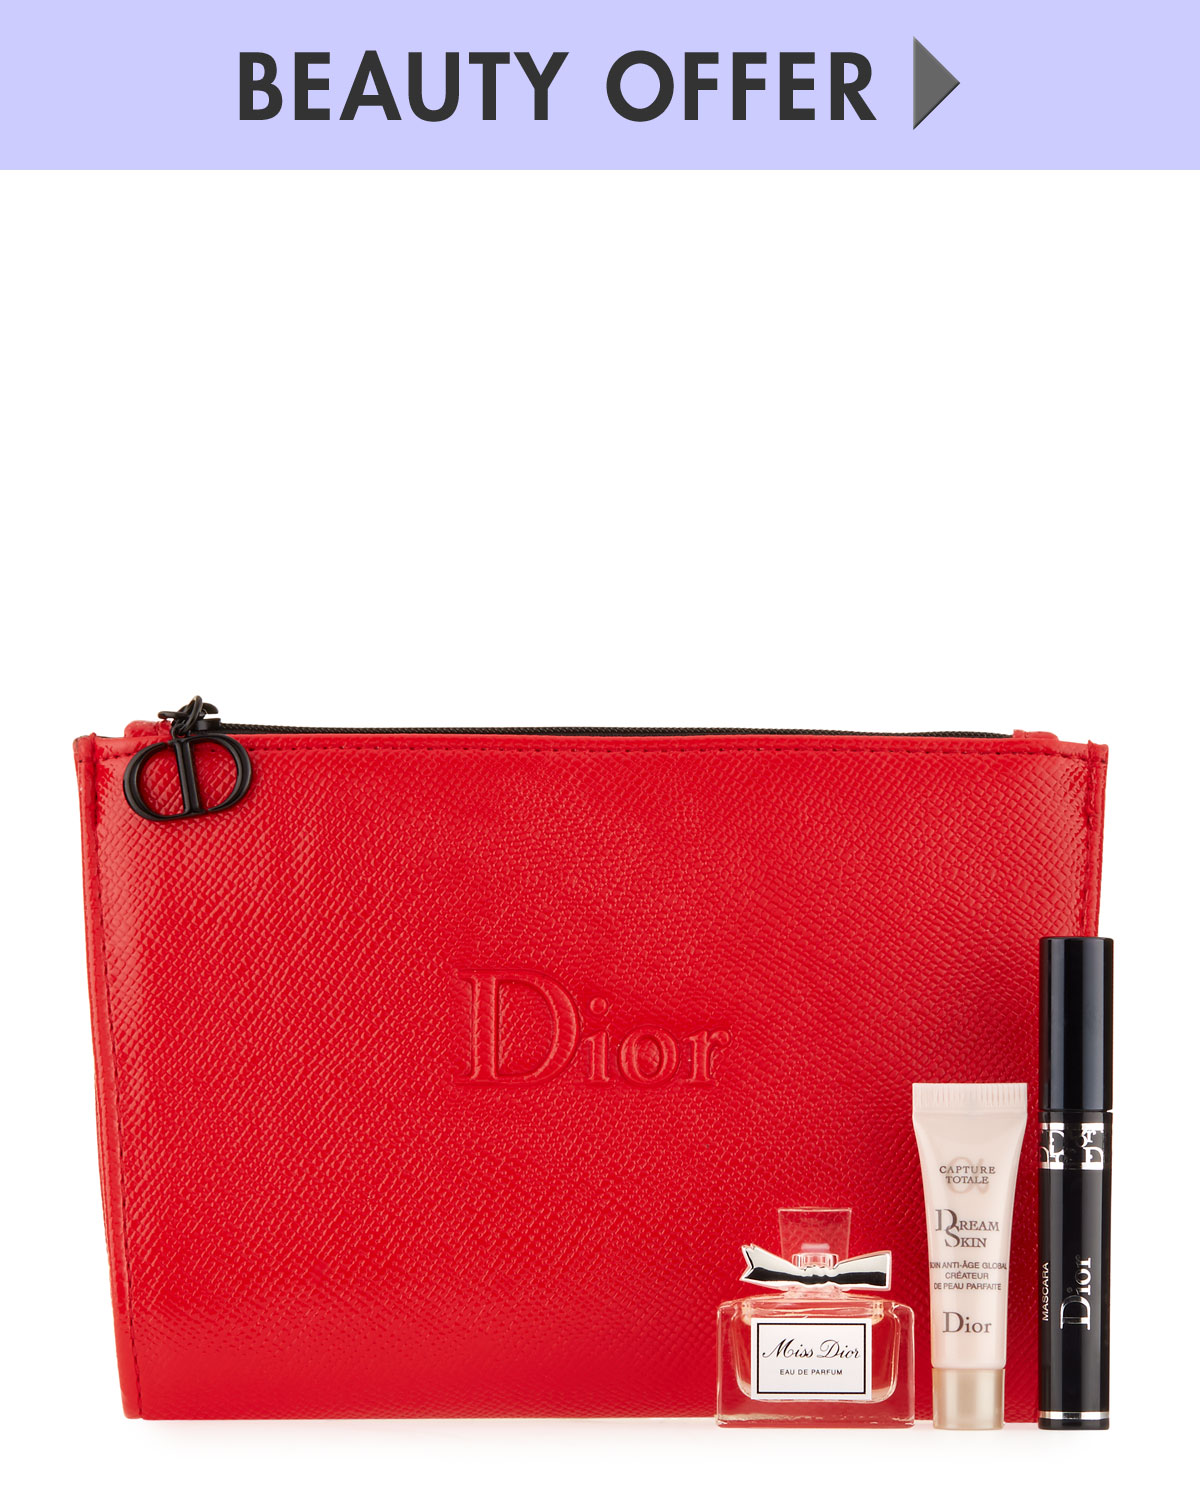 Dior Yours with any $200 Dior Beauty purchase*